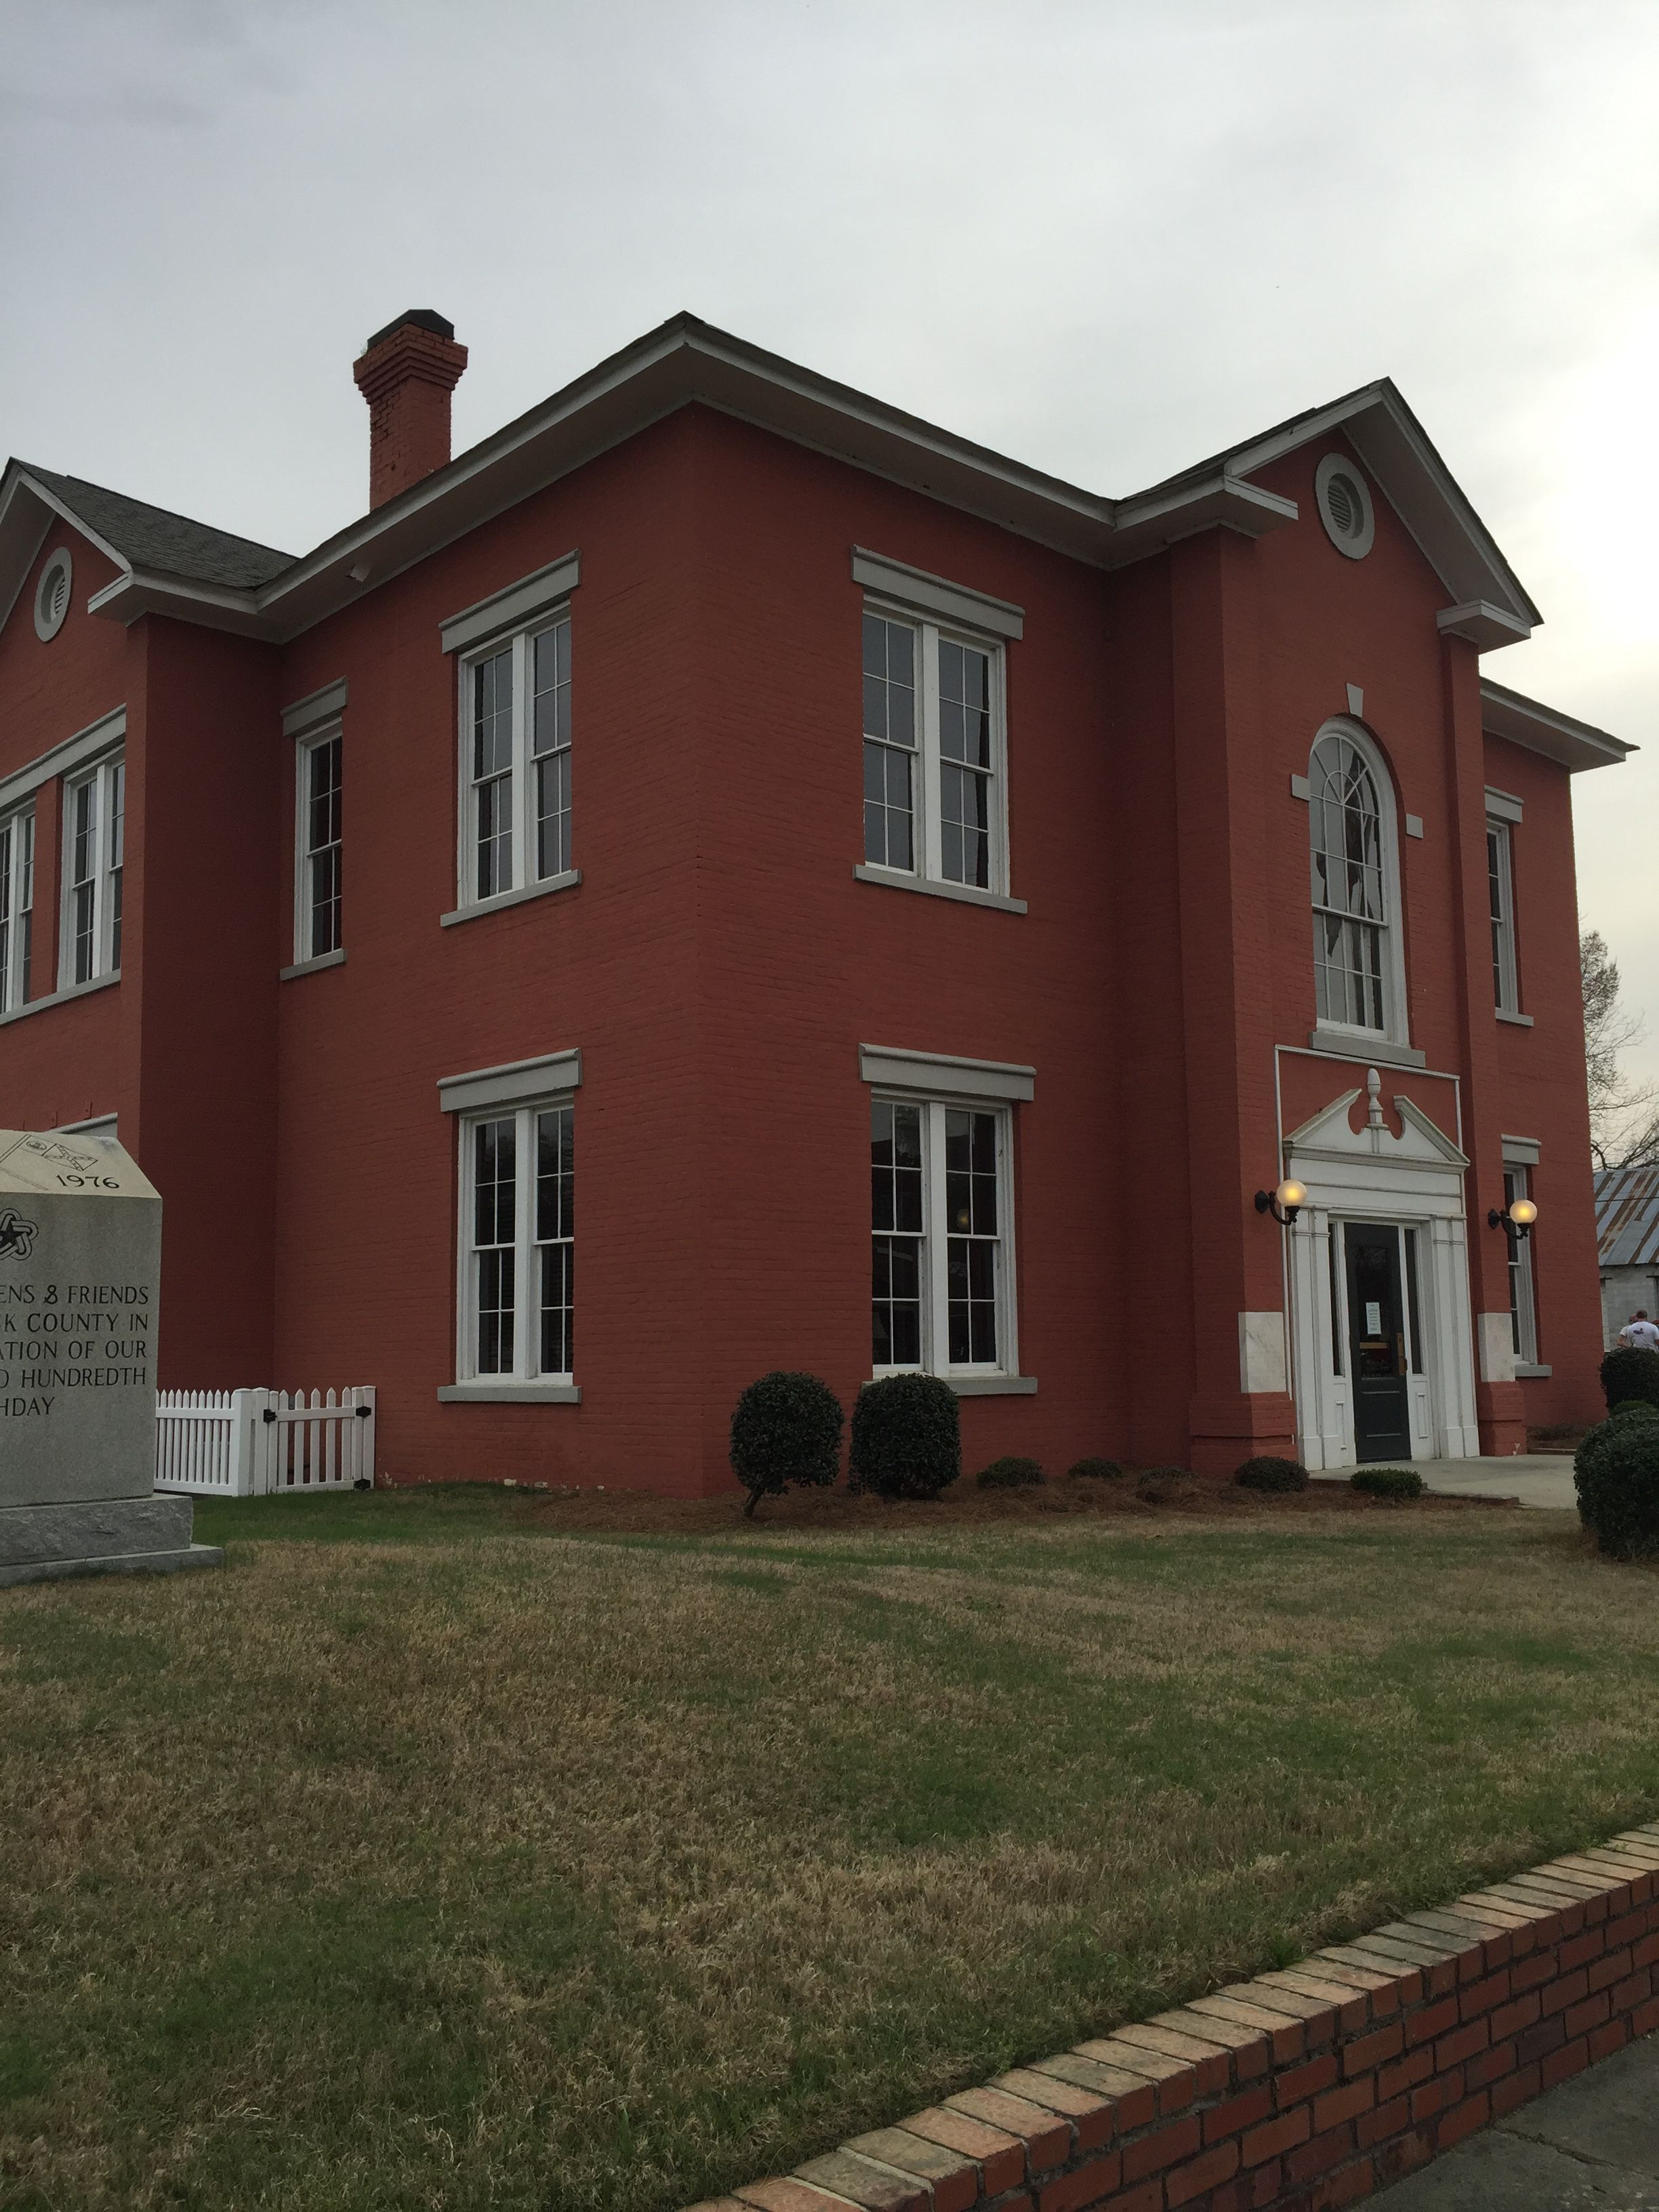 Glascock County Courthouse in Gibson, Paul